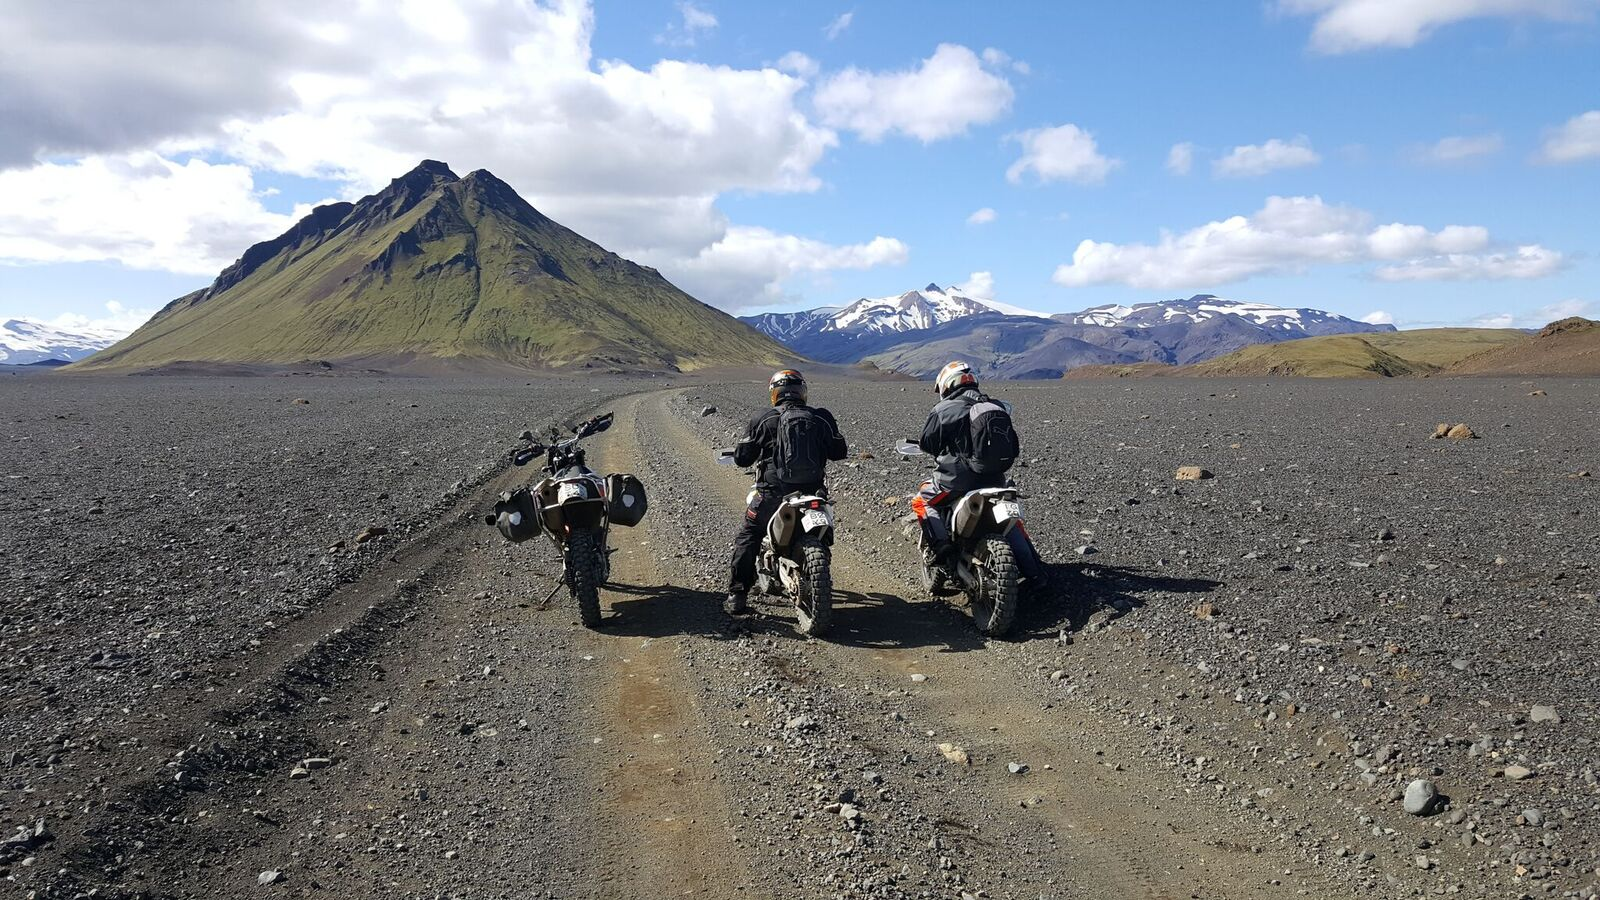 Open road, and a large mountain. No, you can't ride up the mountain, but you can ride the open road.